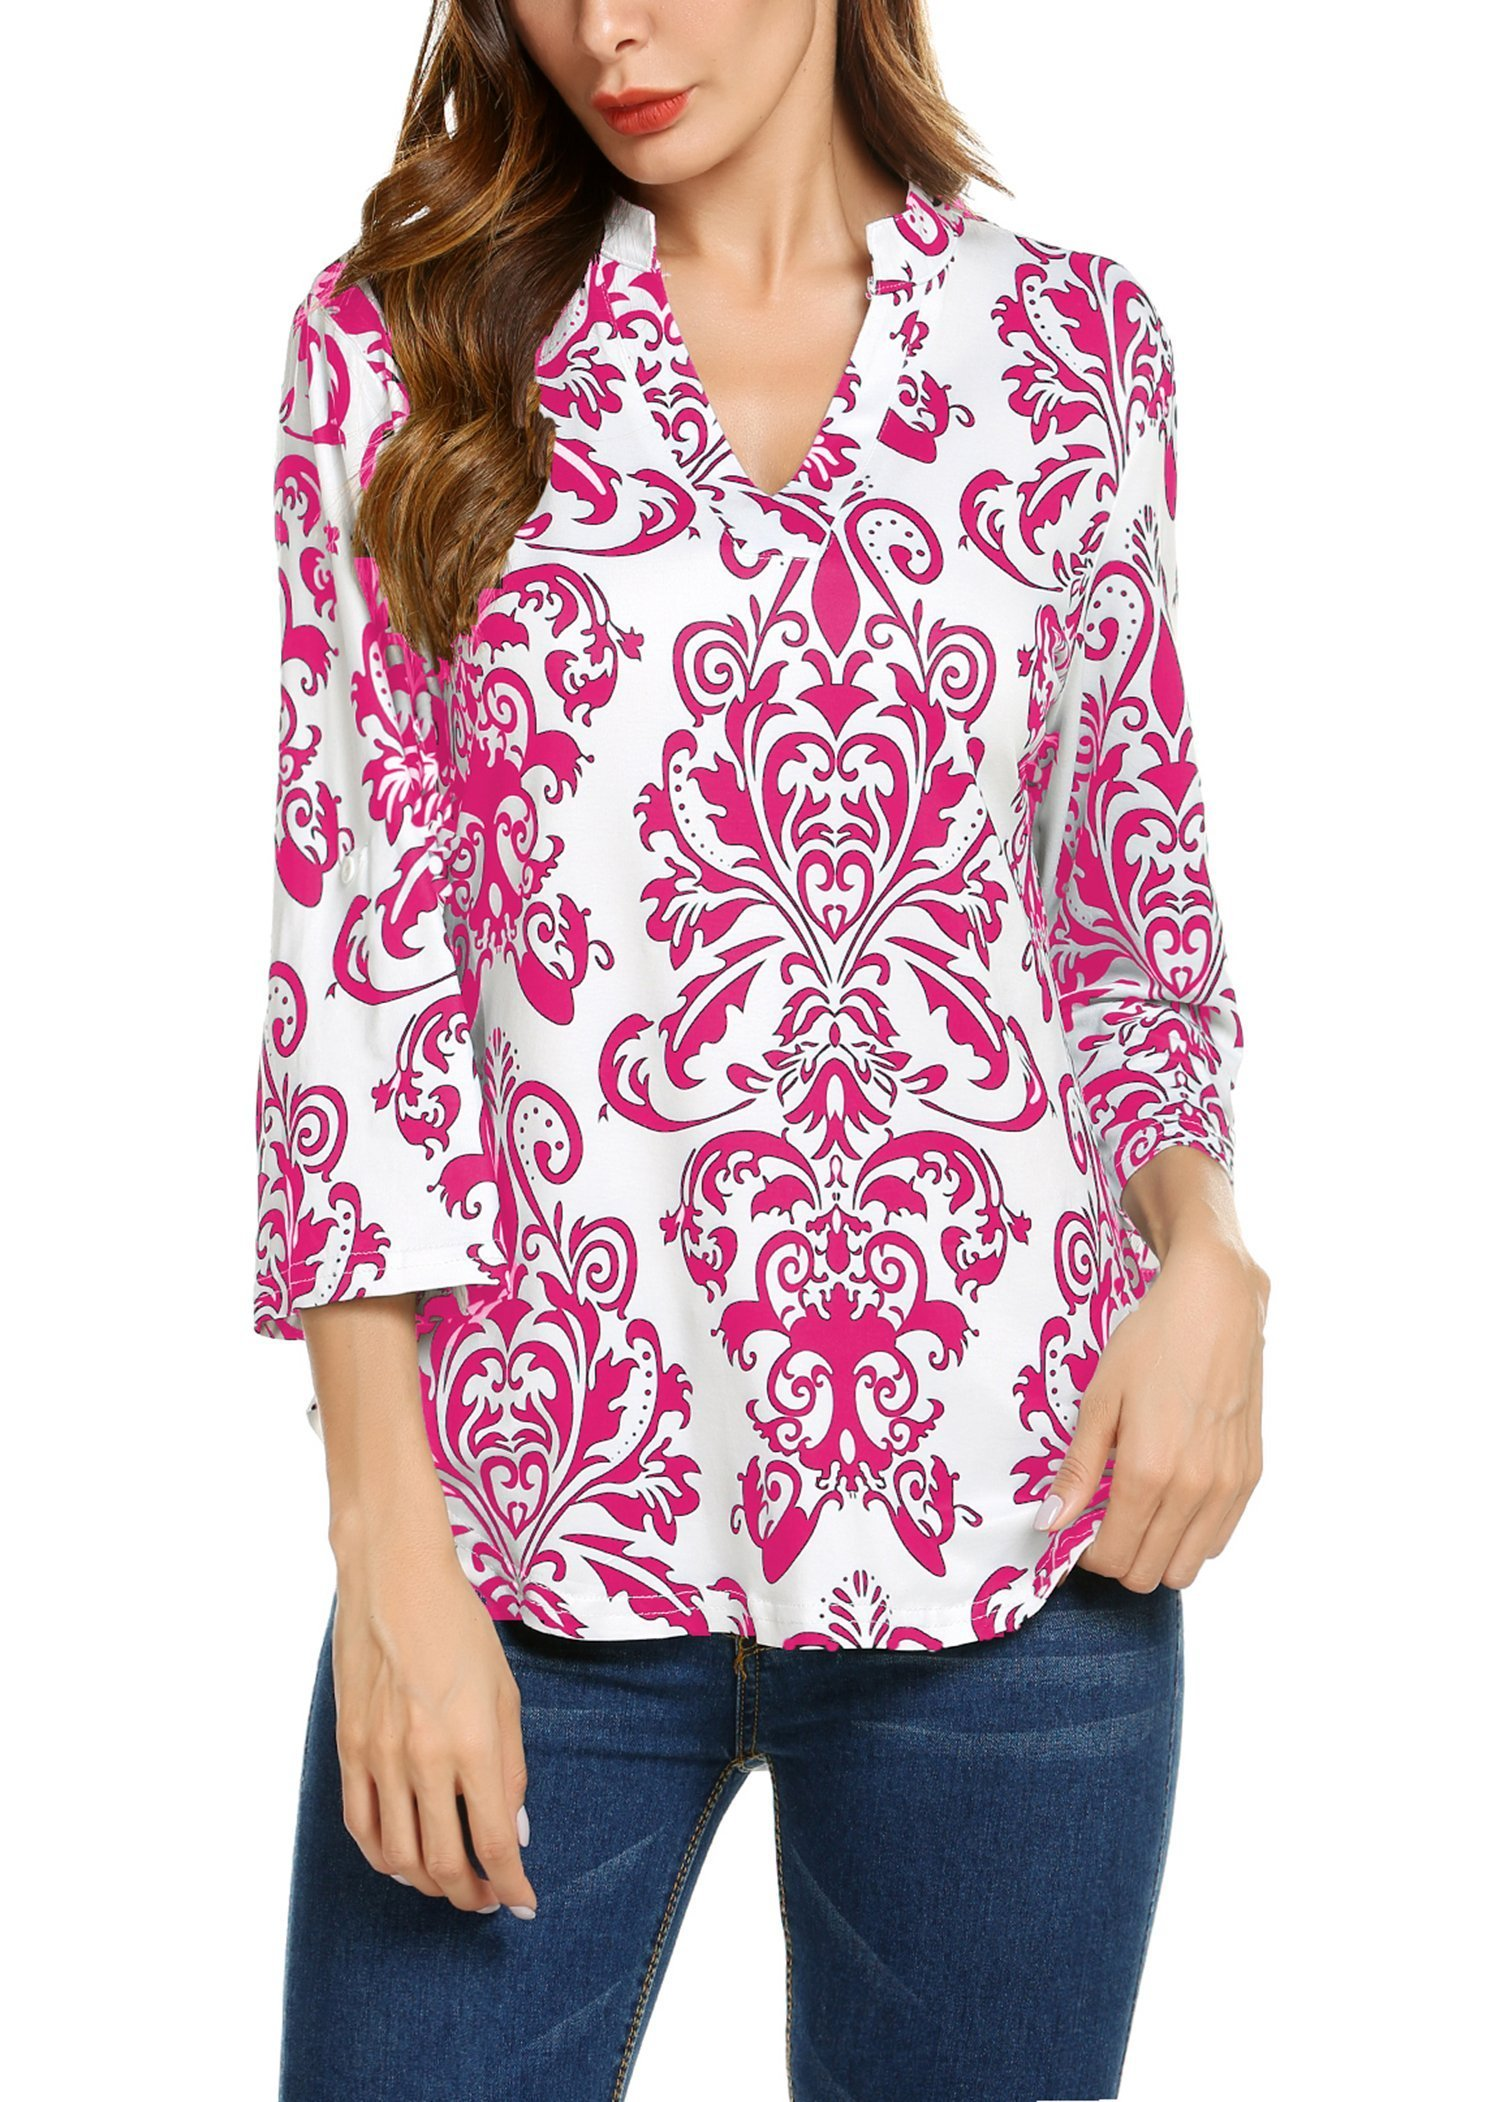 Hount Tops for Women Long Sleeve Loose Pullover Tunic Top Blouse (XX-Large, Red)